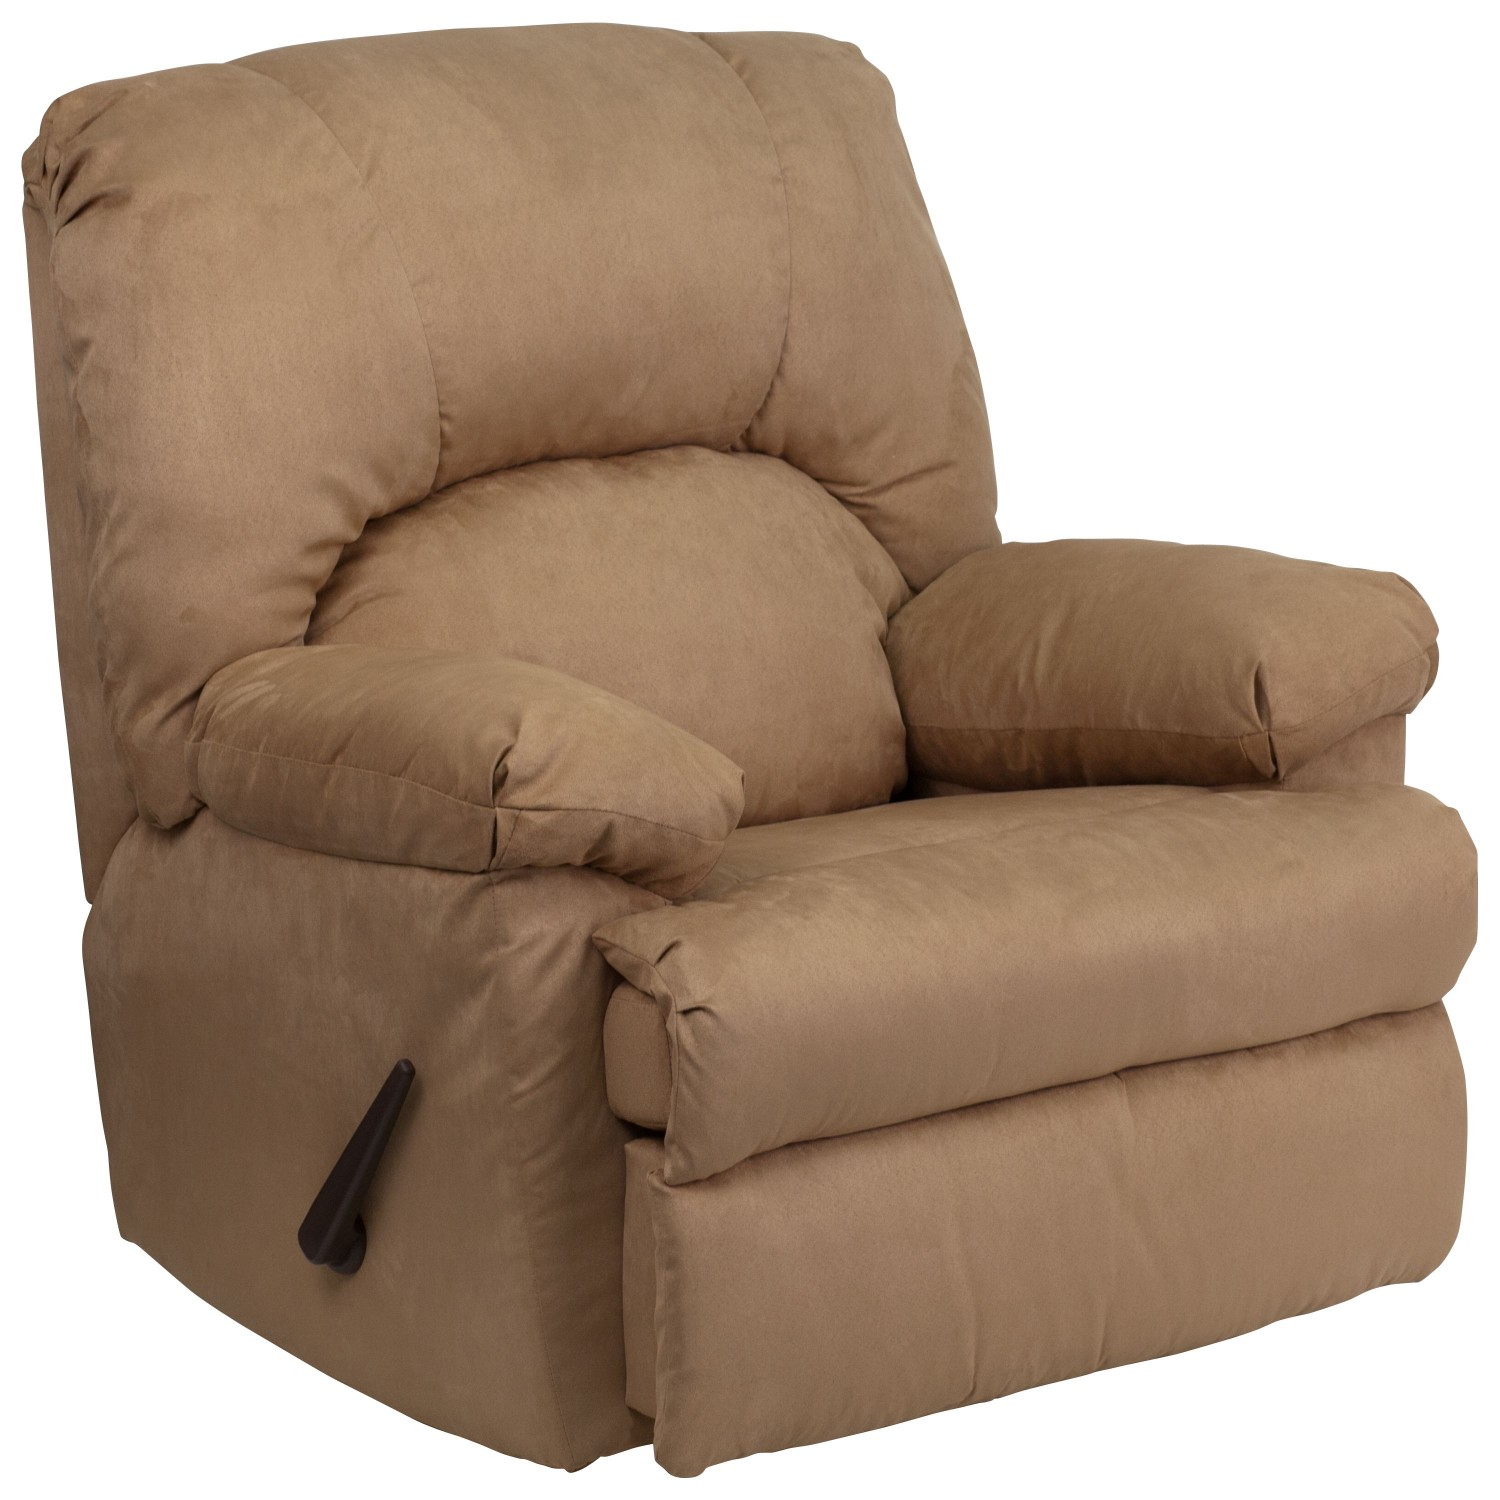 Flash Furniture WM-8500-264-GG Contemporary Montana Latte Mircofiber Suede Rocker Recliner